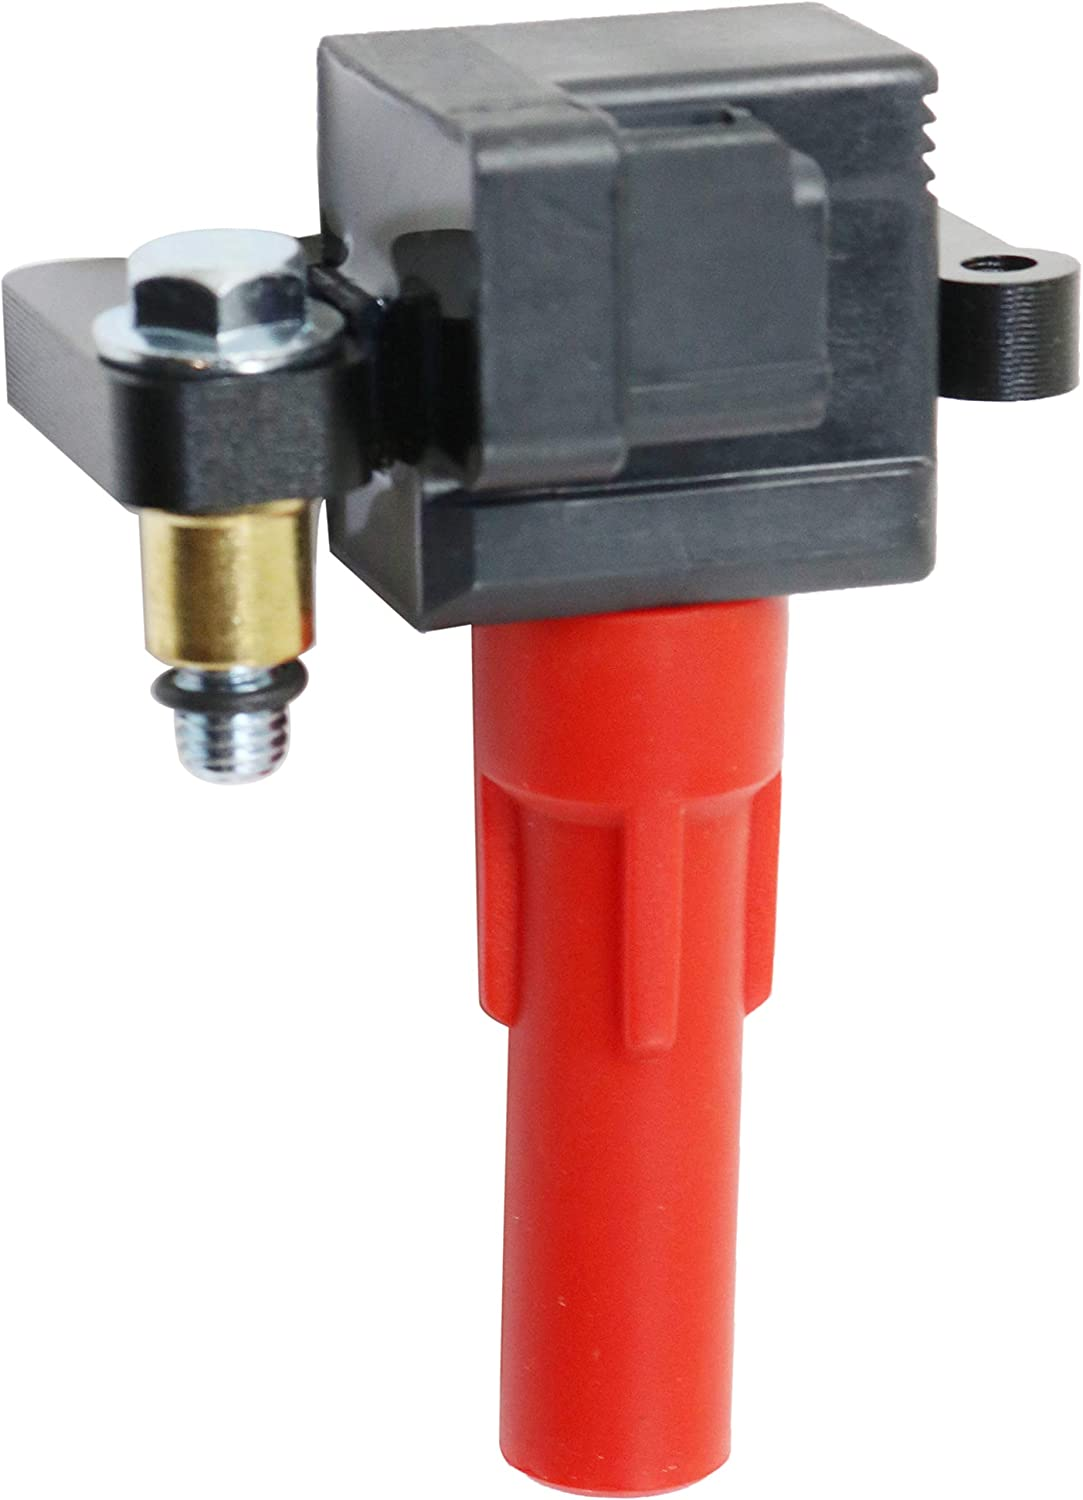 Evan-Fischer Ignition Coil Compatible Lega with Spring 2021 spring and summer new new work one after another Subaru 2010-2014